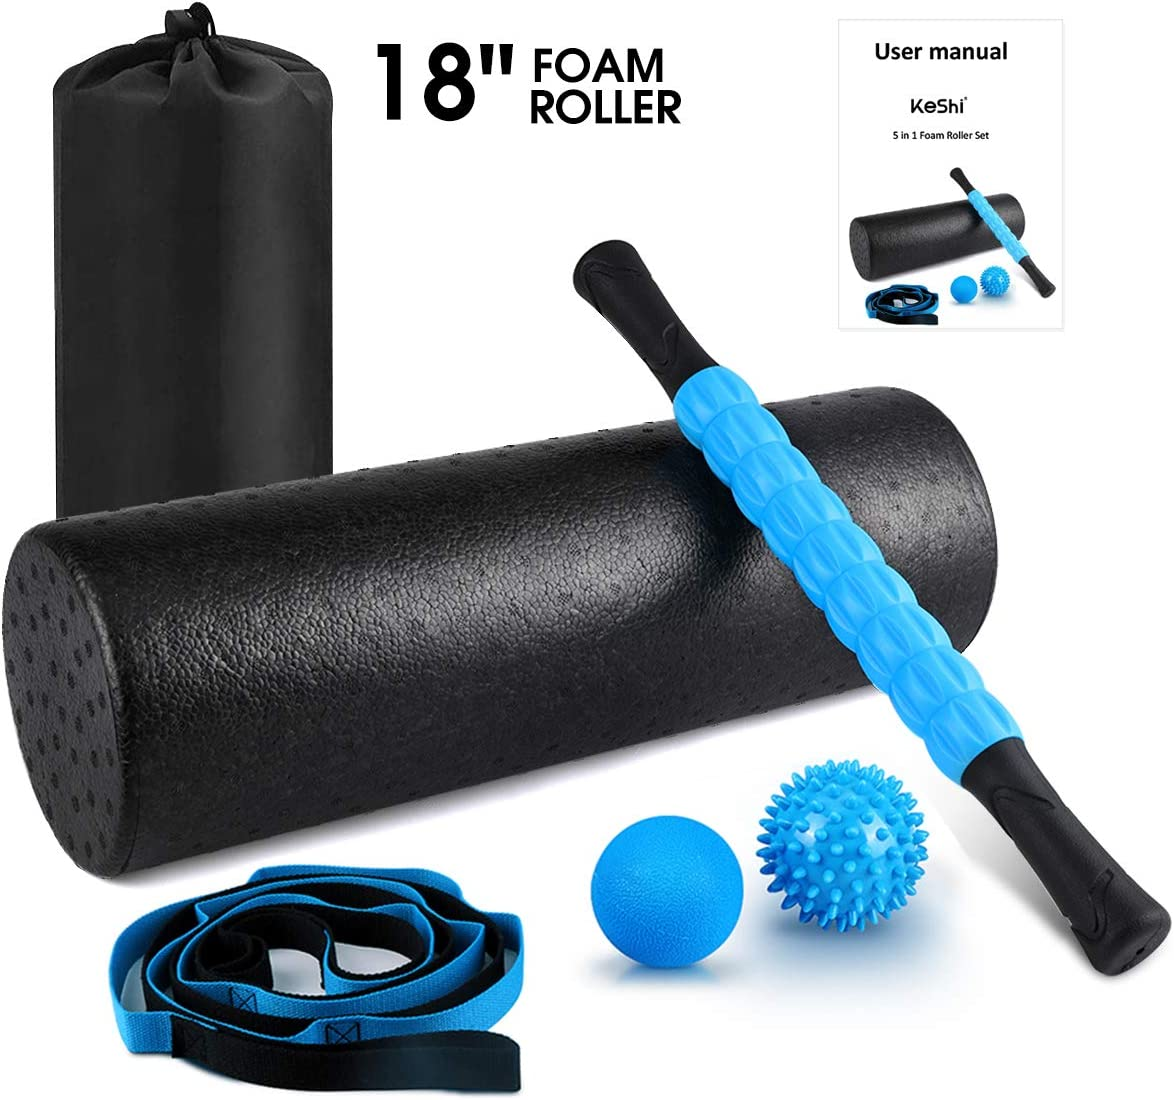 KeShi Foam Roller Set, 18 Muscle Foam Roller, 17 Massage Roller Stick, Spiky Massage Ball, Solid Ball, and Stretching Strap, Perfect for Pain Tightness Relief Home Gym Set